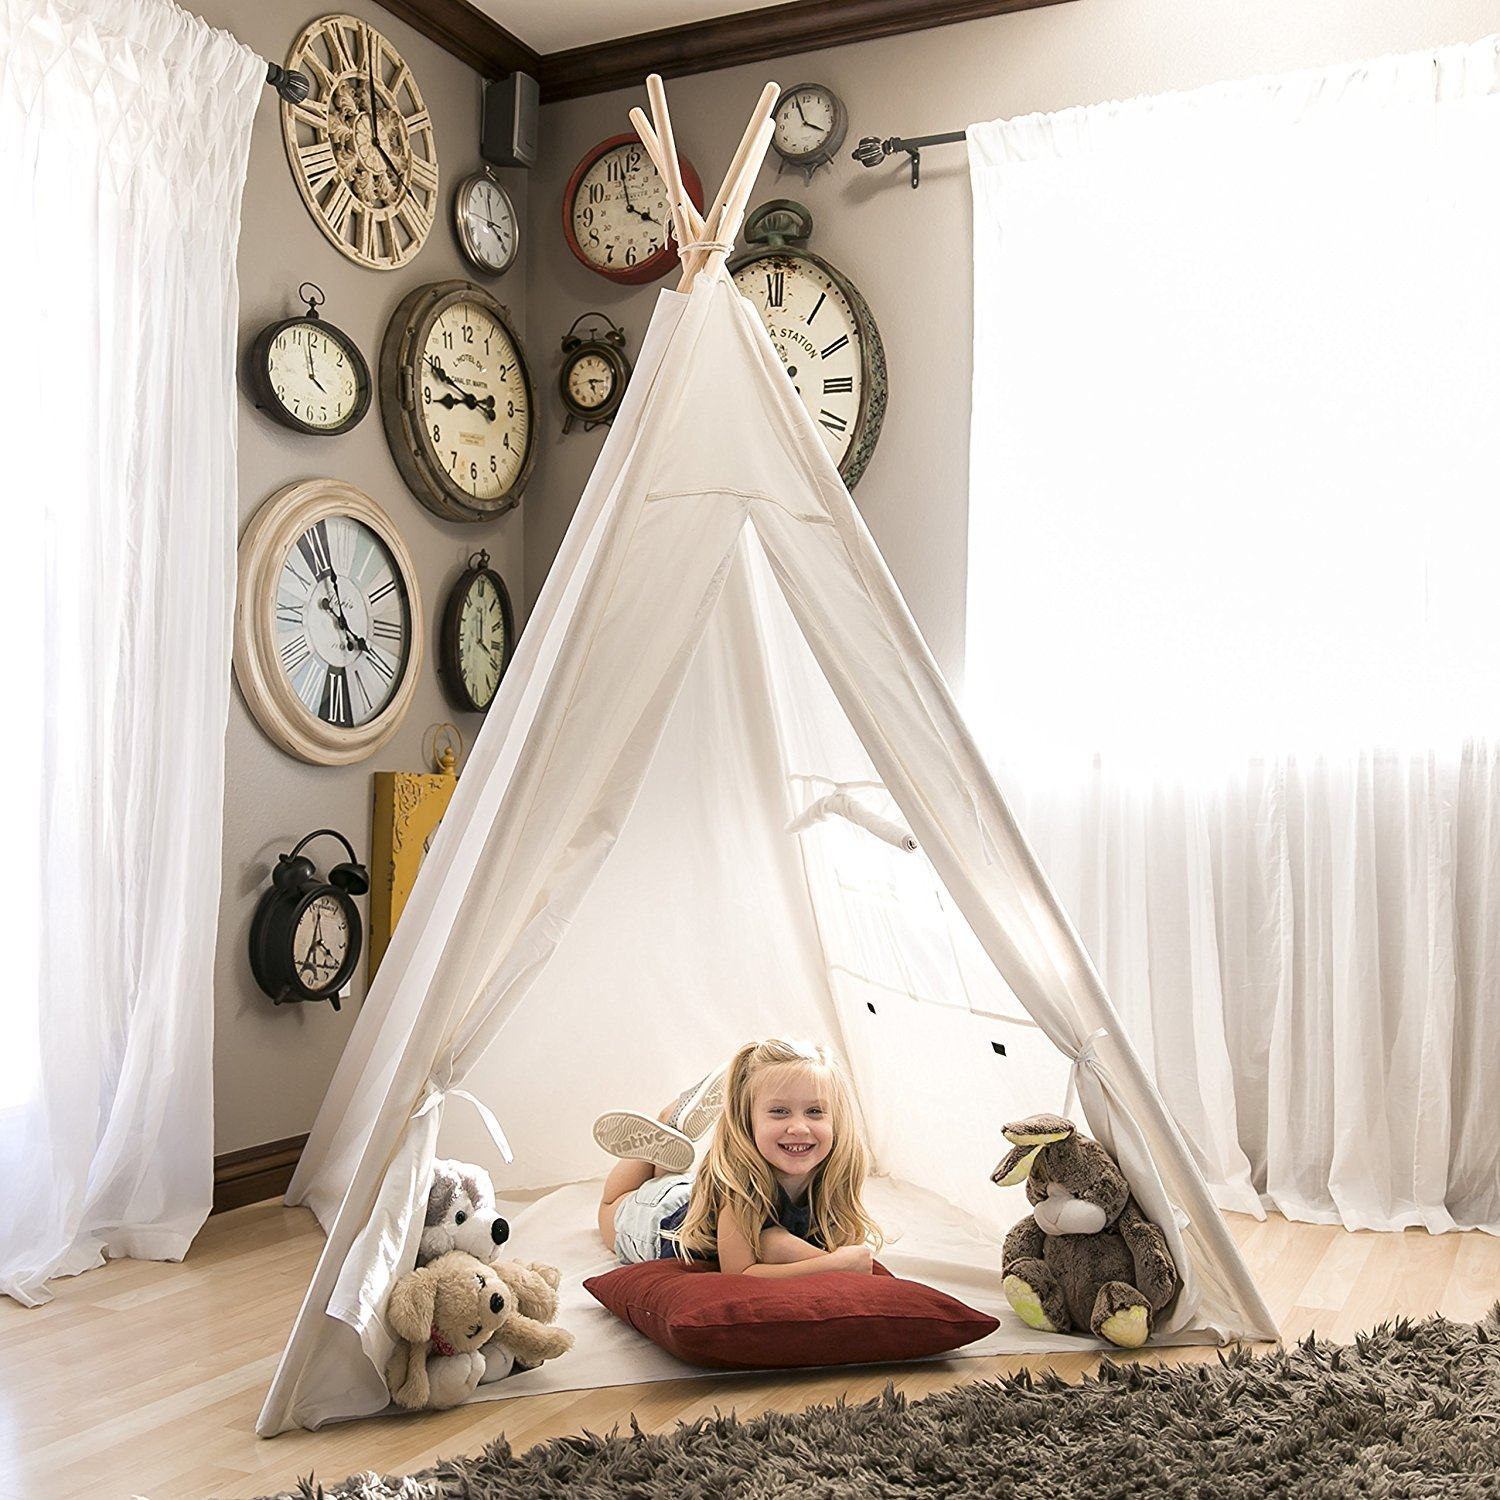 Play-Tent Game-House Tipi Triangle KidsTent Teepee Canvas Sleeping Dome 130cm Teepee House Wigwam Room Children's Tent